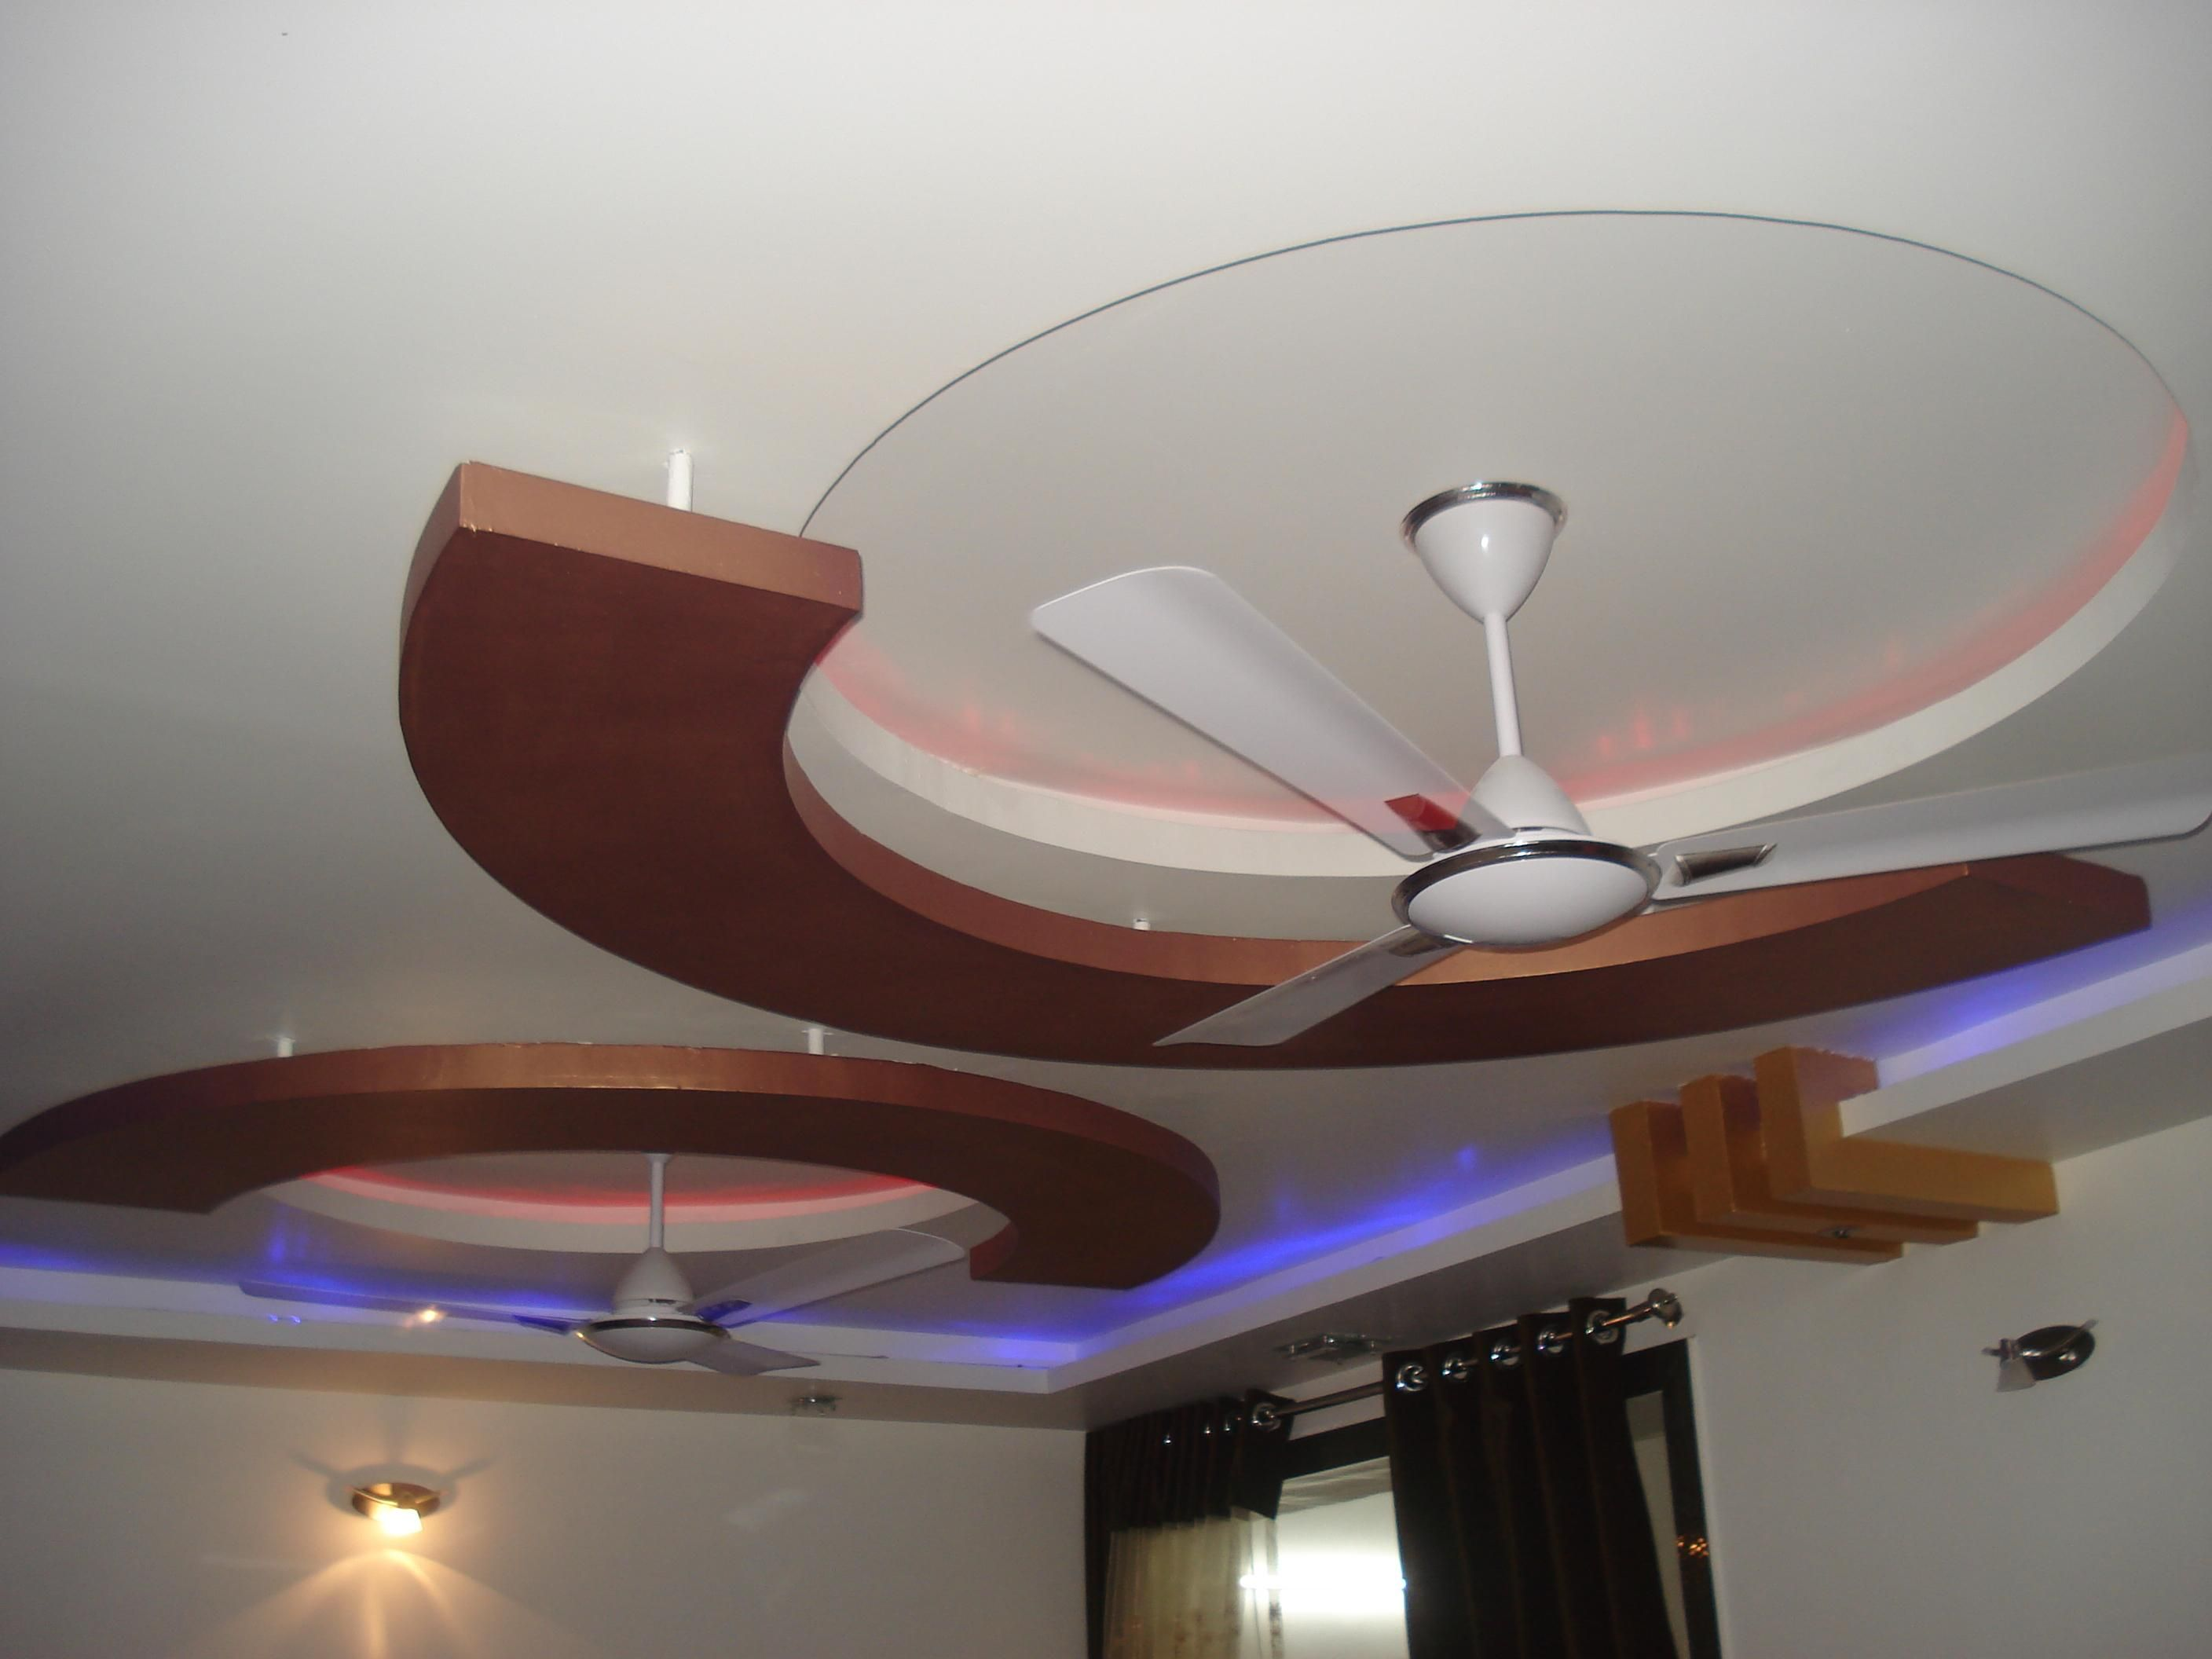 Pop Ceiling Design For Hall With 2 Fans